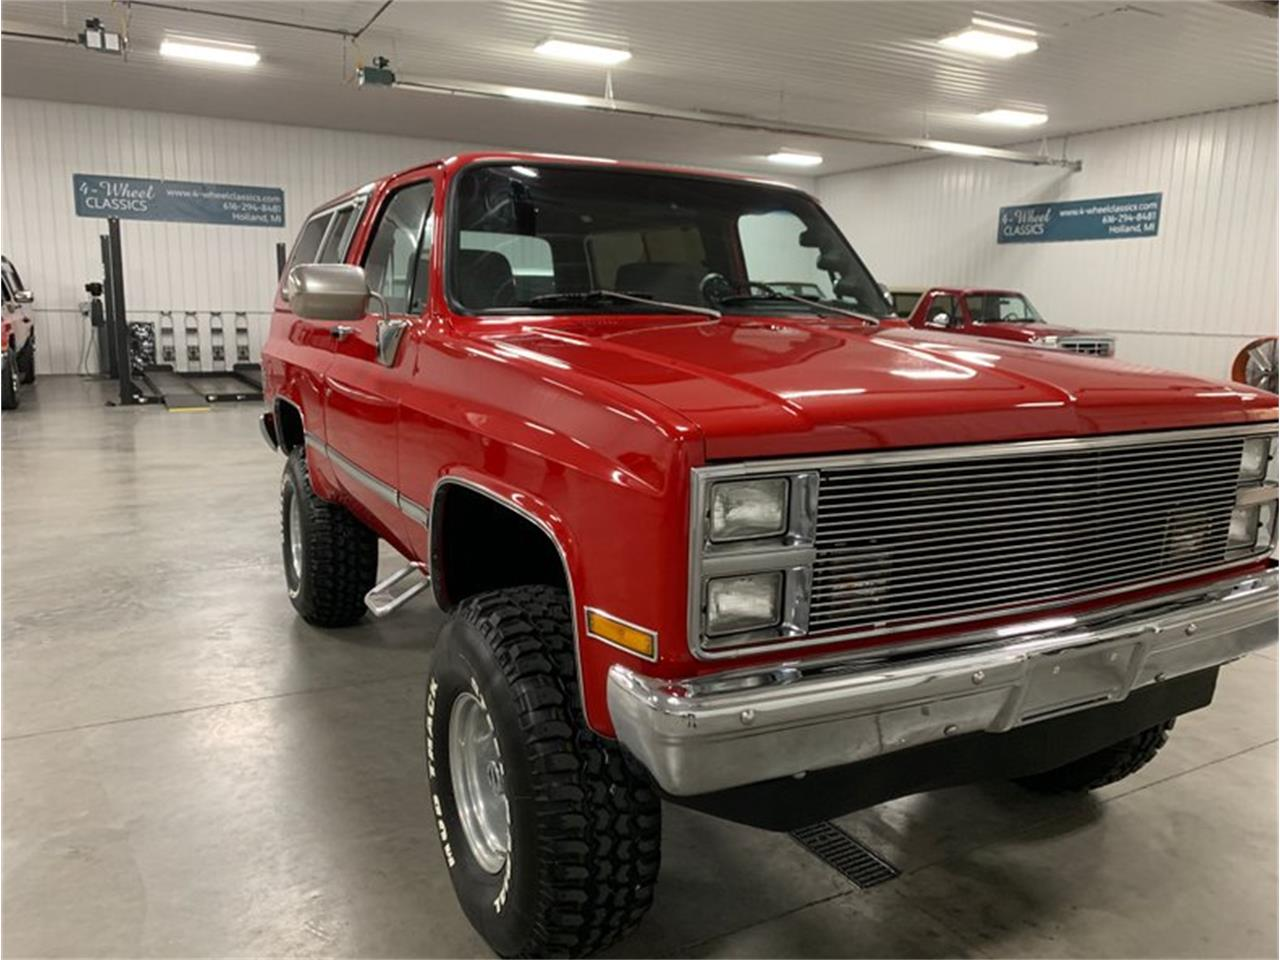 Large Picture of '82 GMC Jimmy located in Michigan - $18,900.00 - QRIT